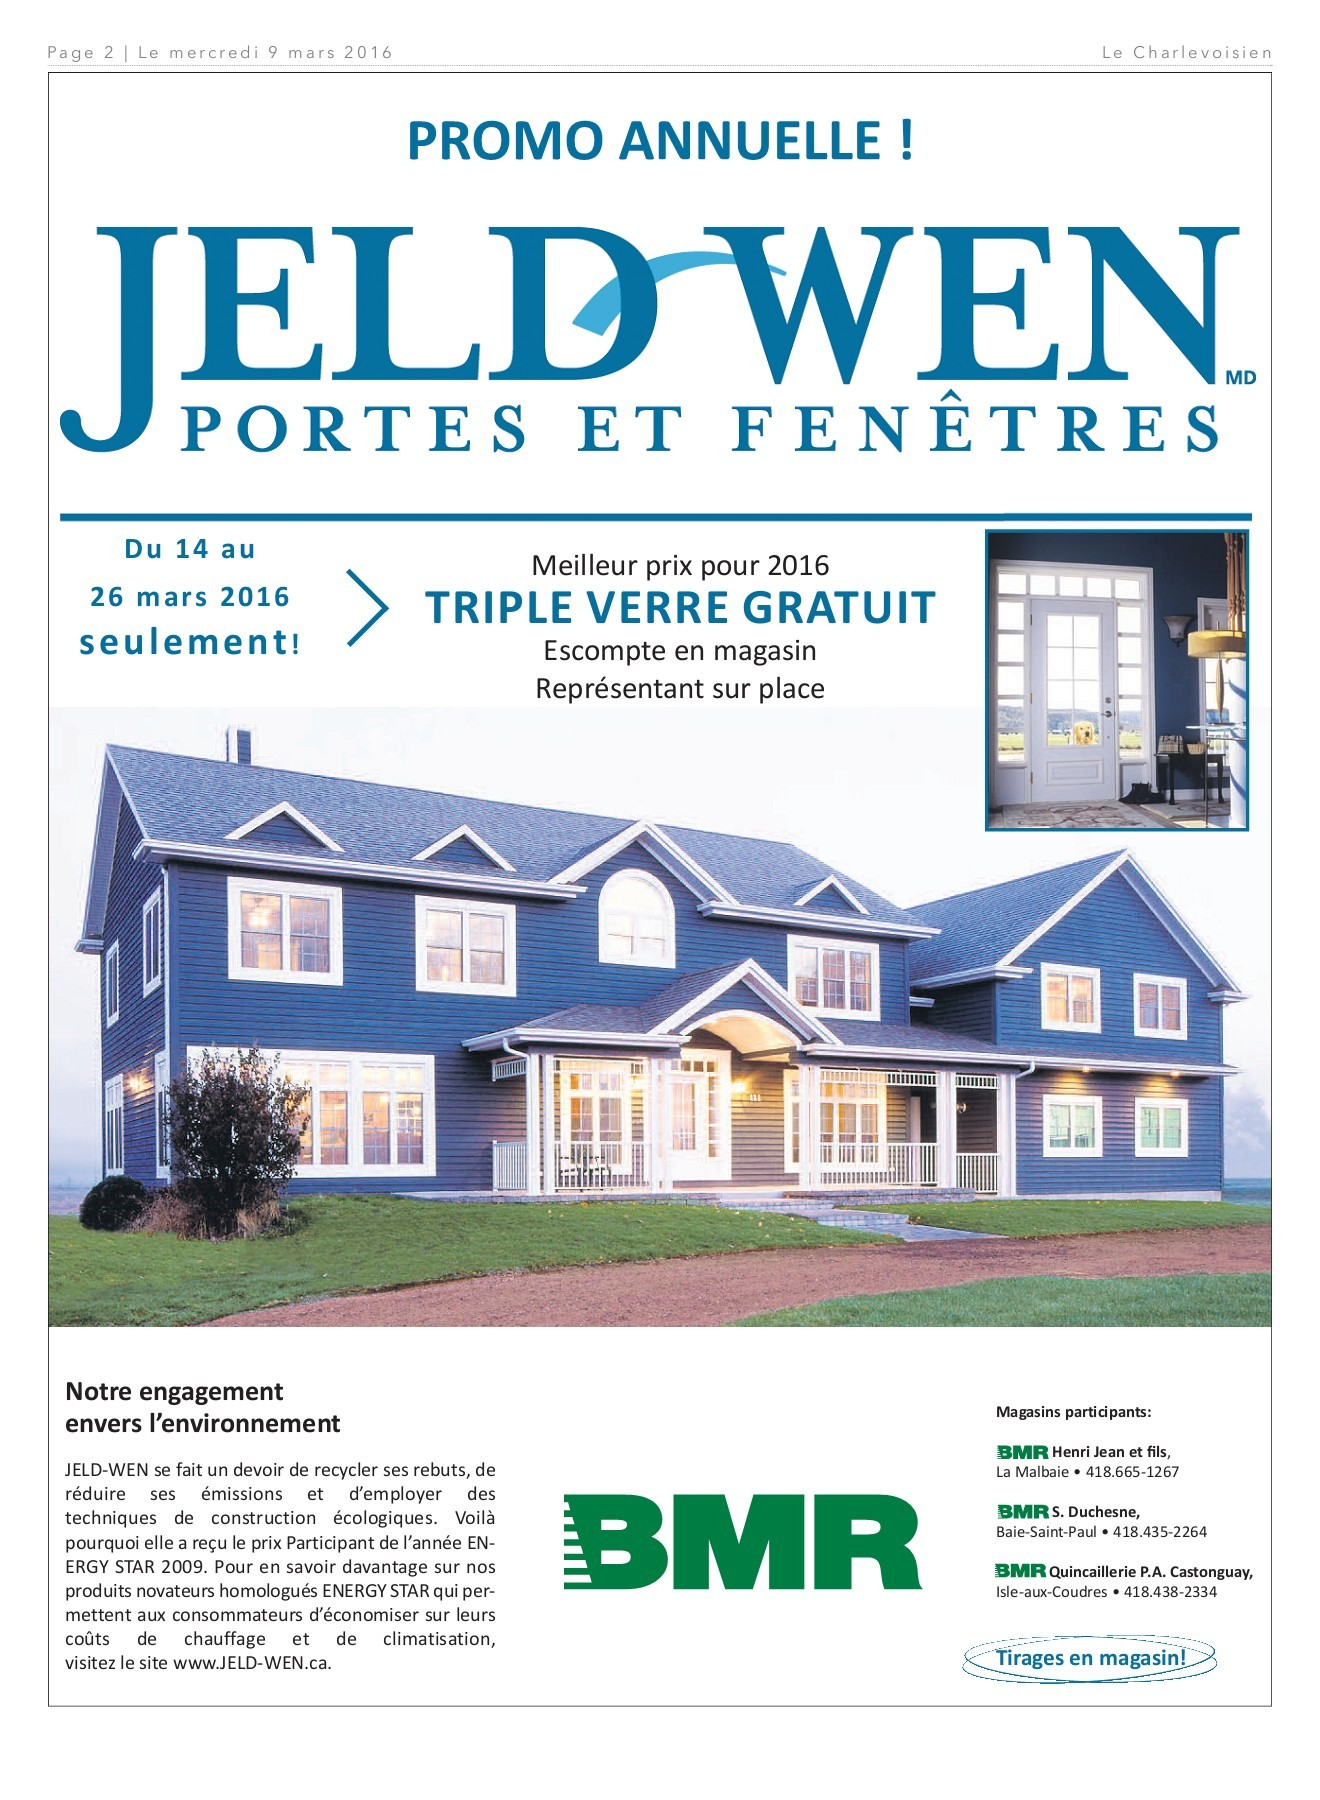 Lumiere Exterieur Bmr Le Charlevoisien 9 Mars 2016 Pages 1 40 Text Version Fliphtml5